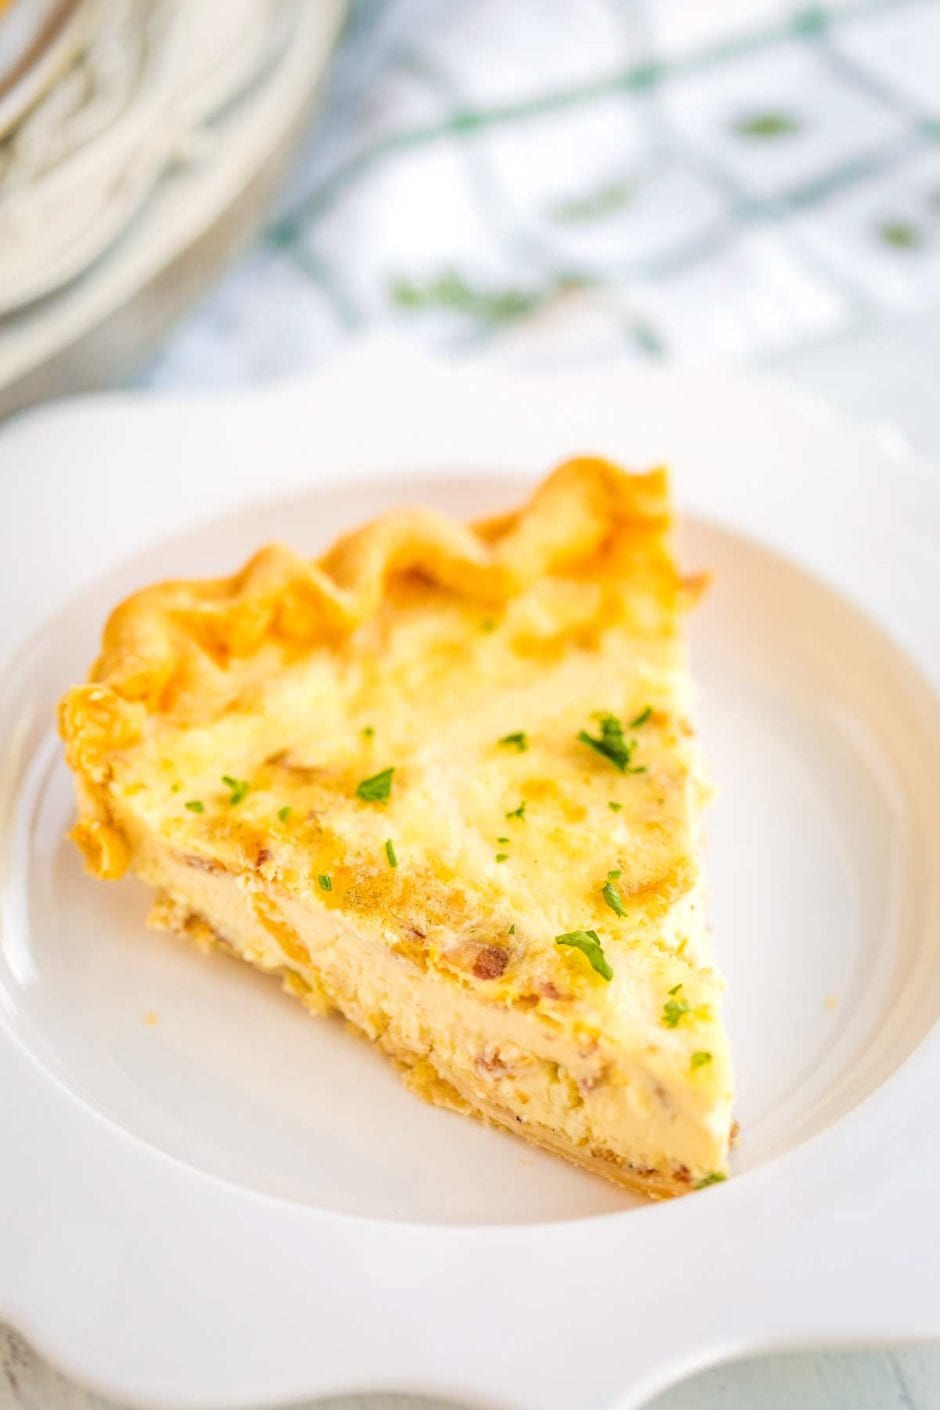 Close up picture of Homemade Quiche Lorraine slice on a white plate.